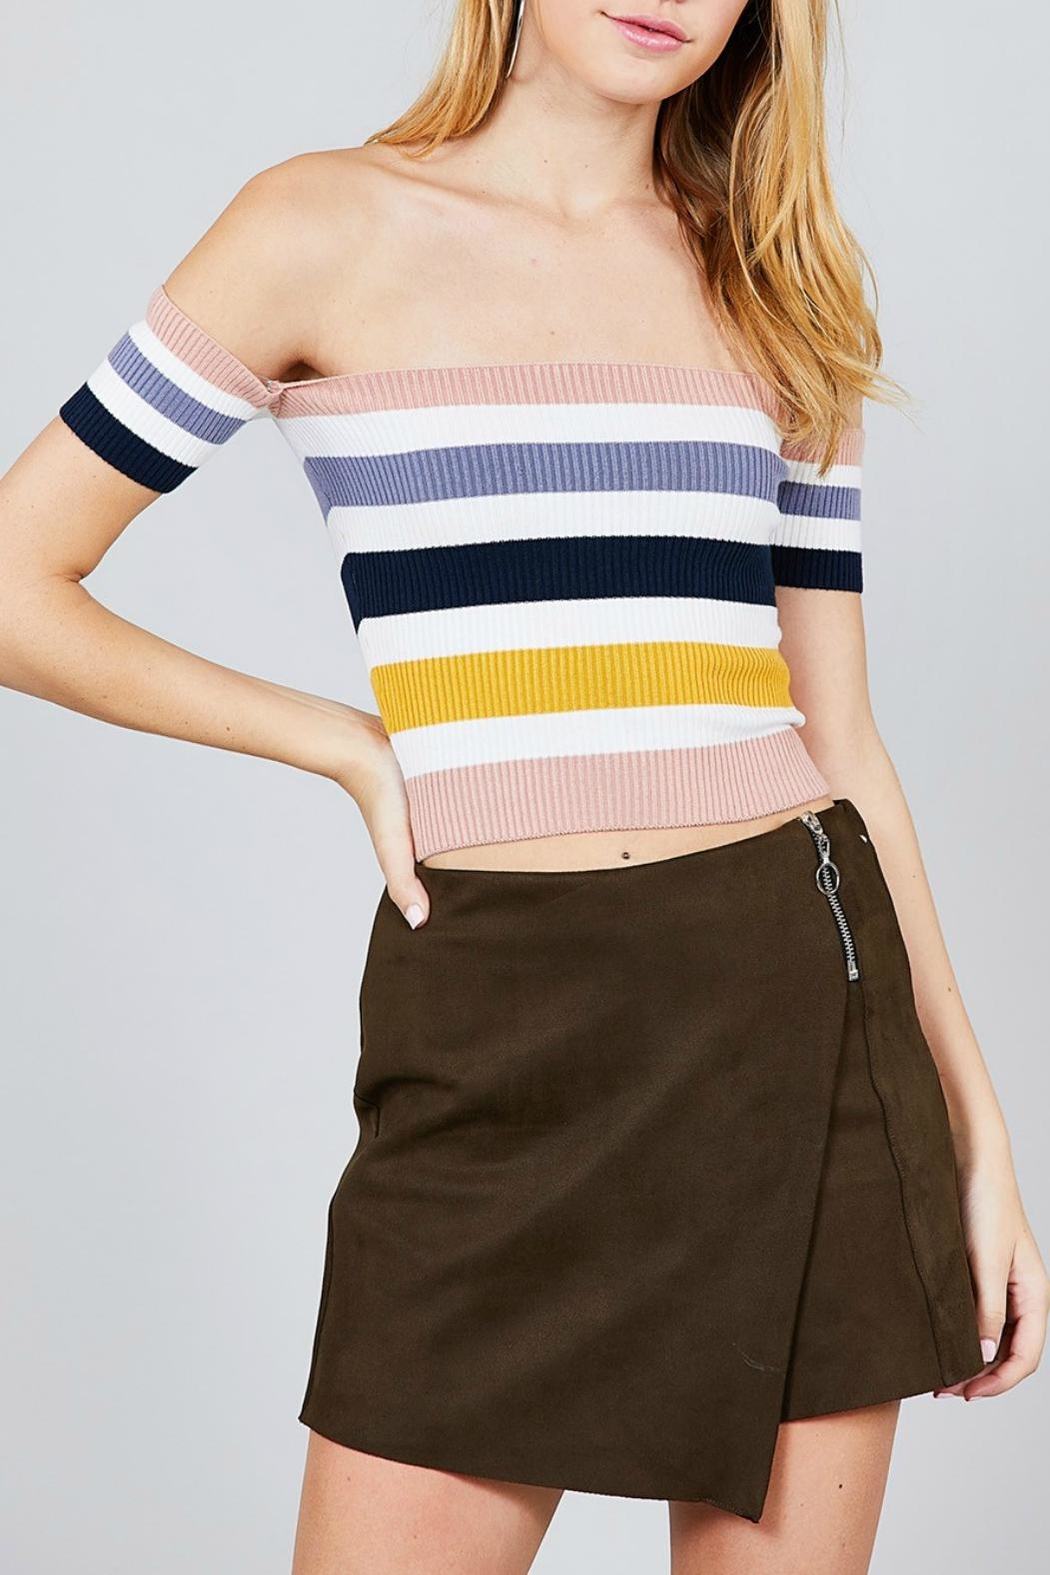 Pretty Little Things Colorblock Crop Top - Main Image